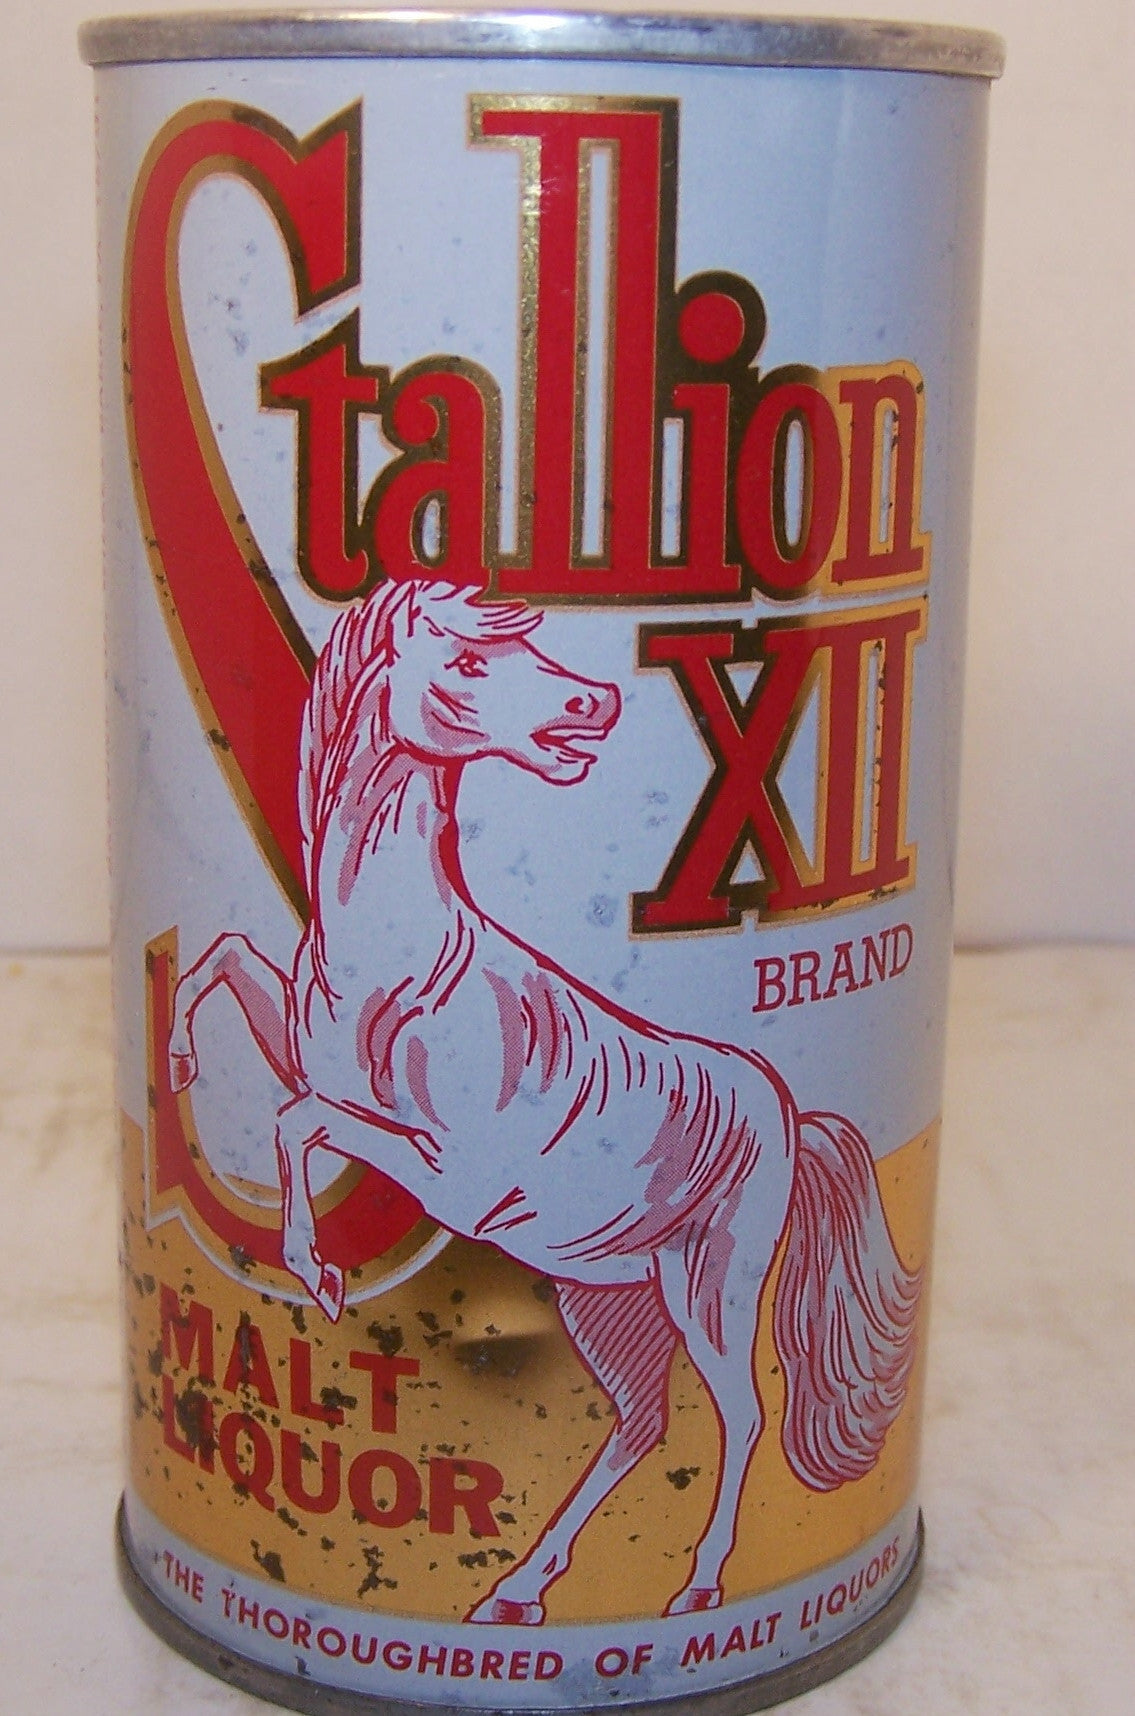 Stallion XII Malt Liquor, USBC II 126-3, grade 1- Sold on 2/8/15